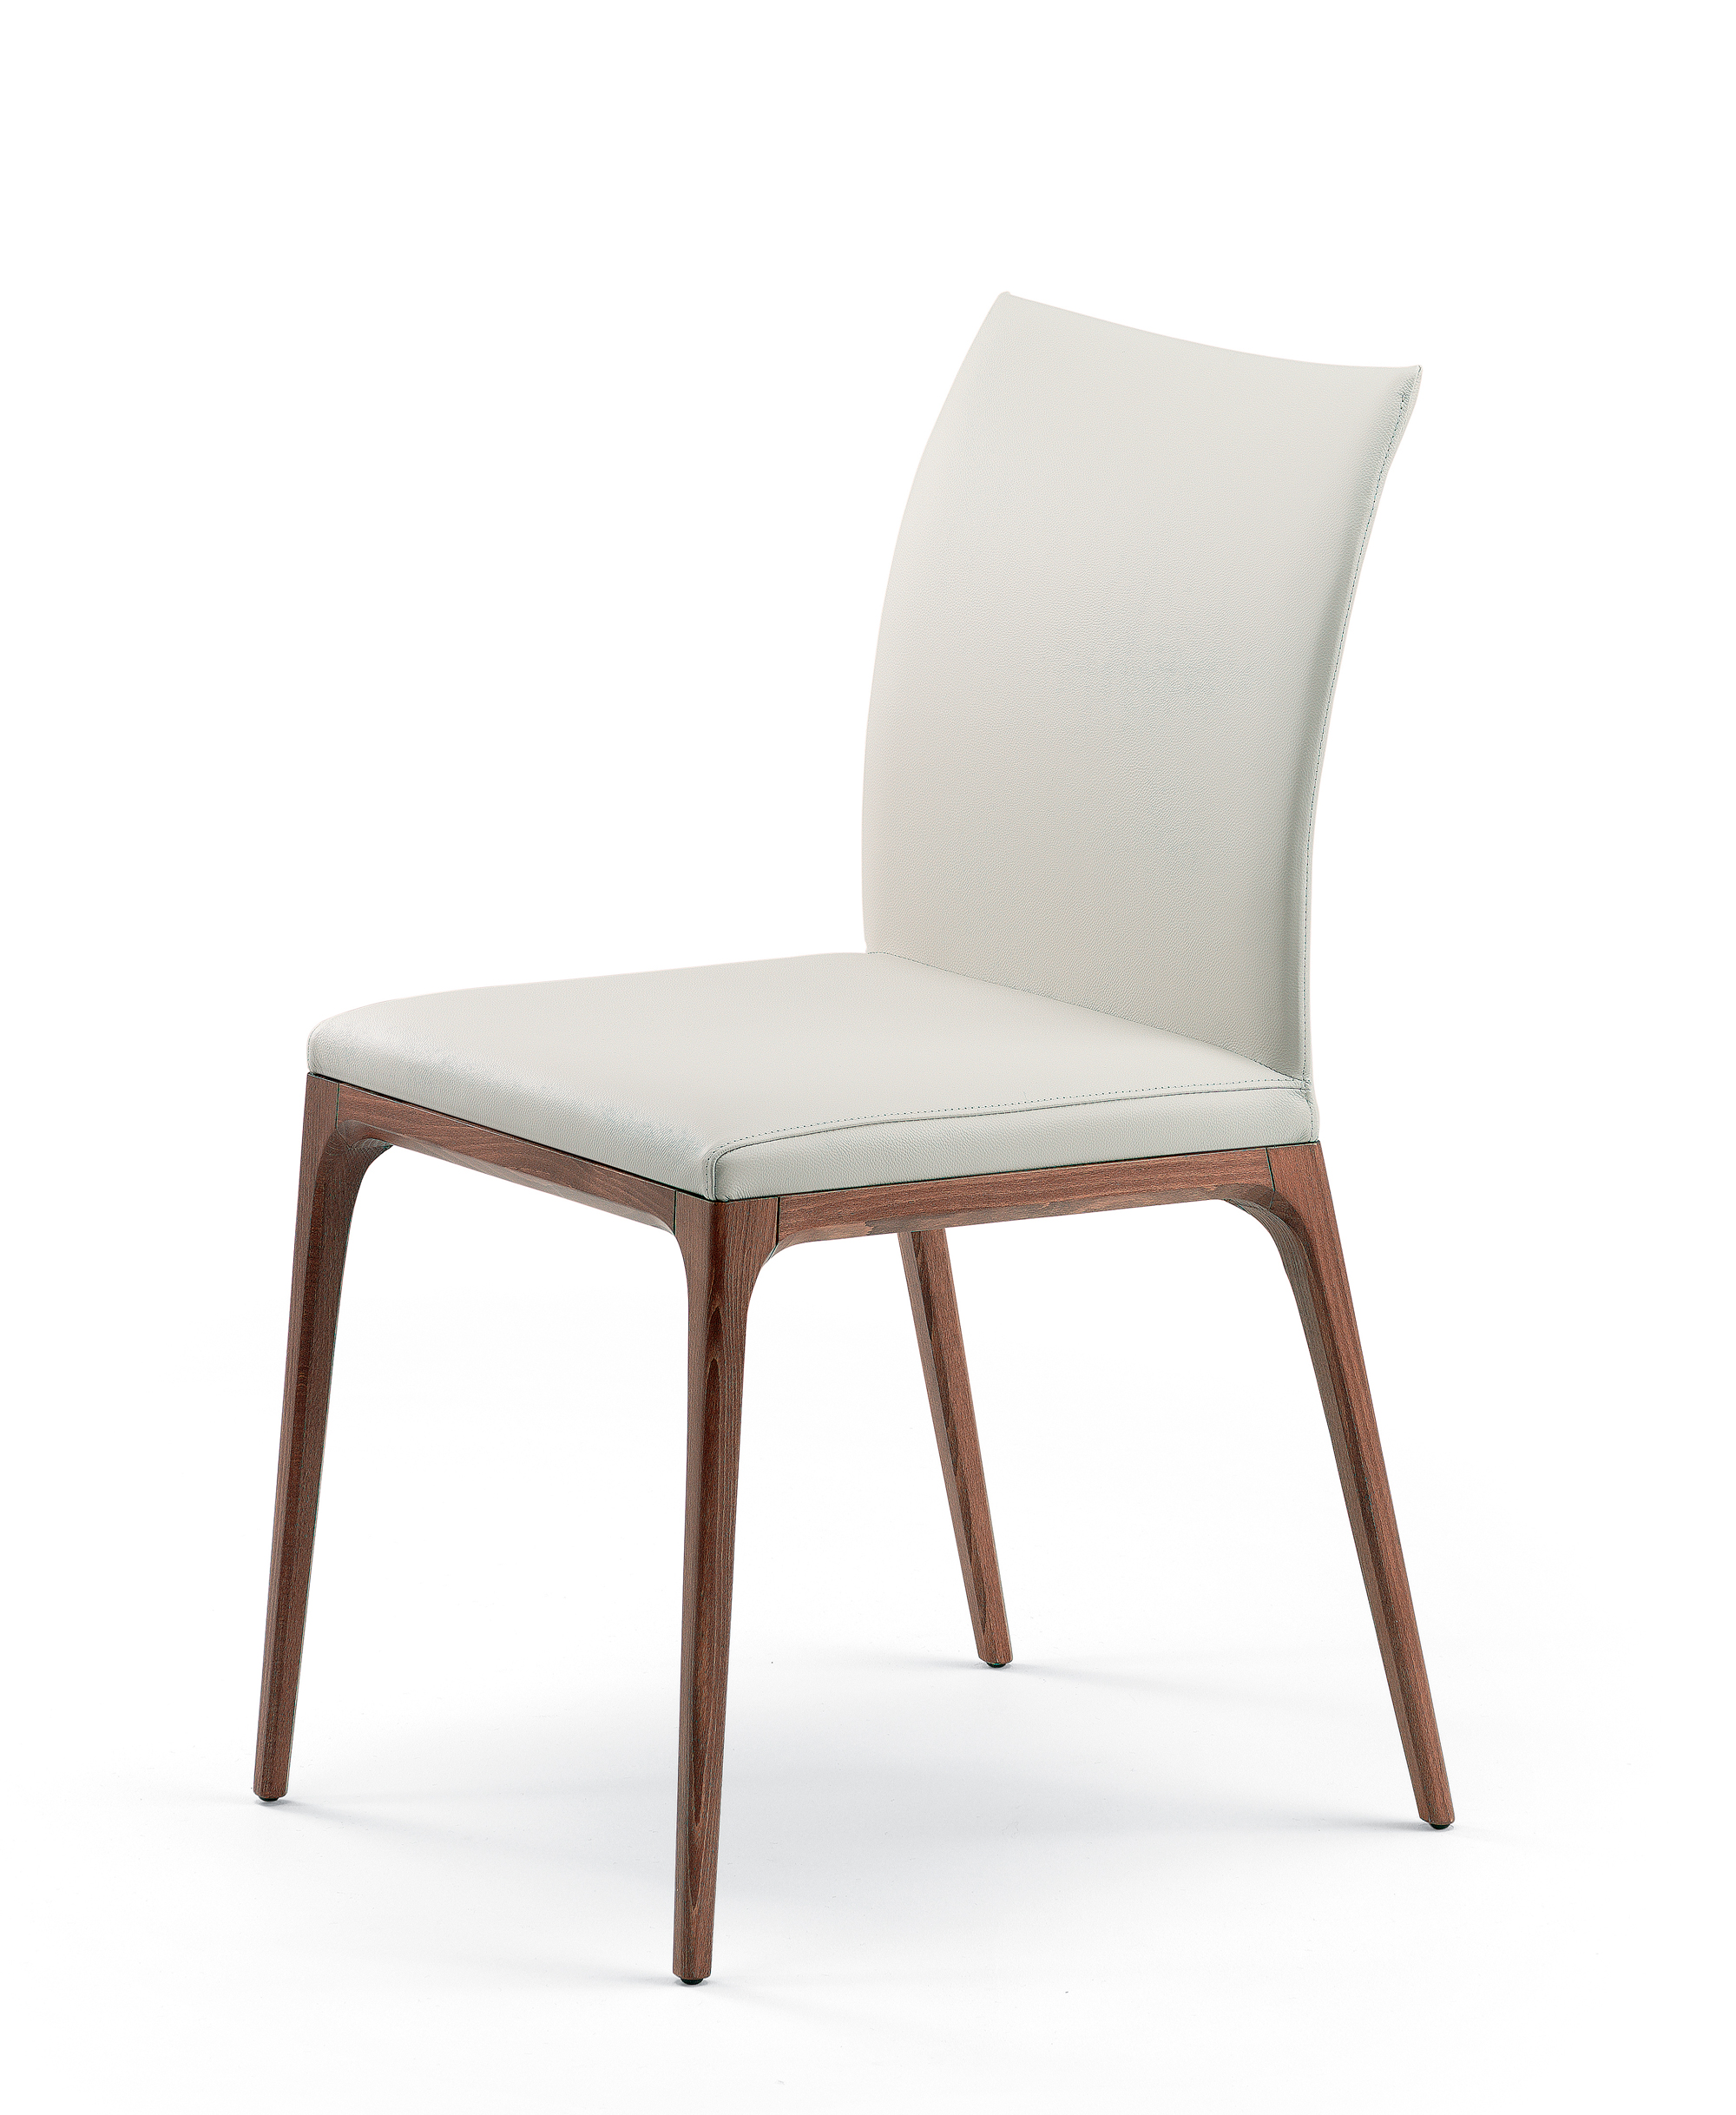 Luxury italian arcadia chair italian designer luxury for Designer dining room chairs